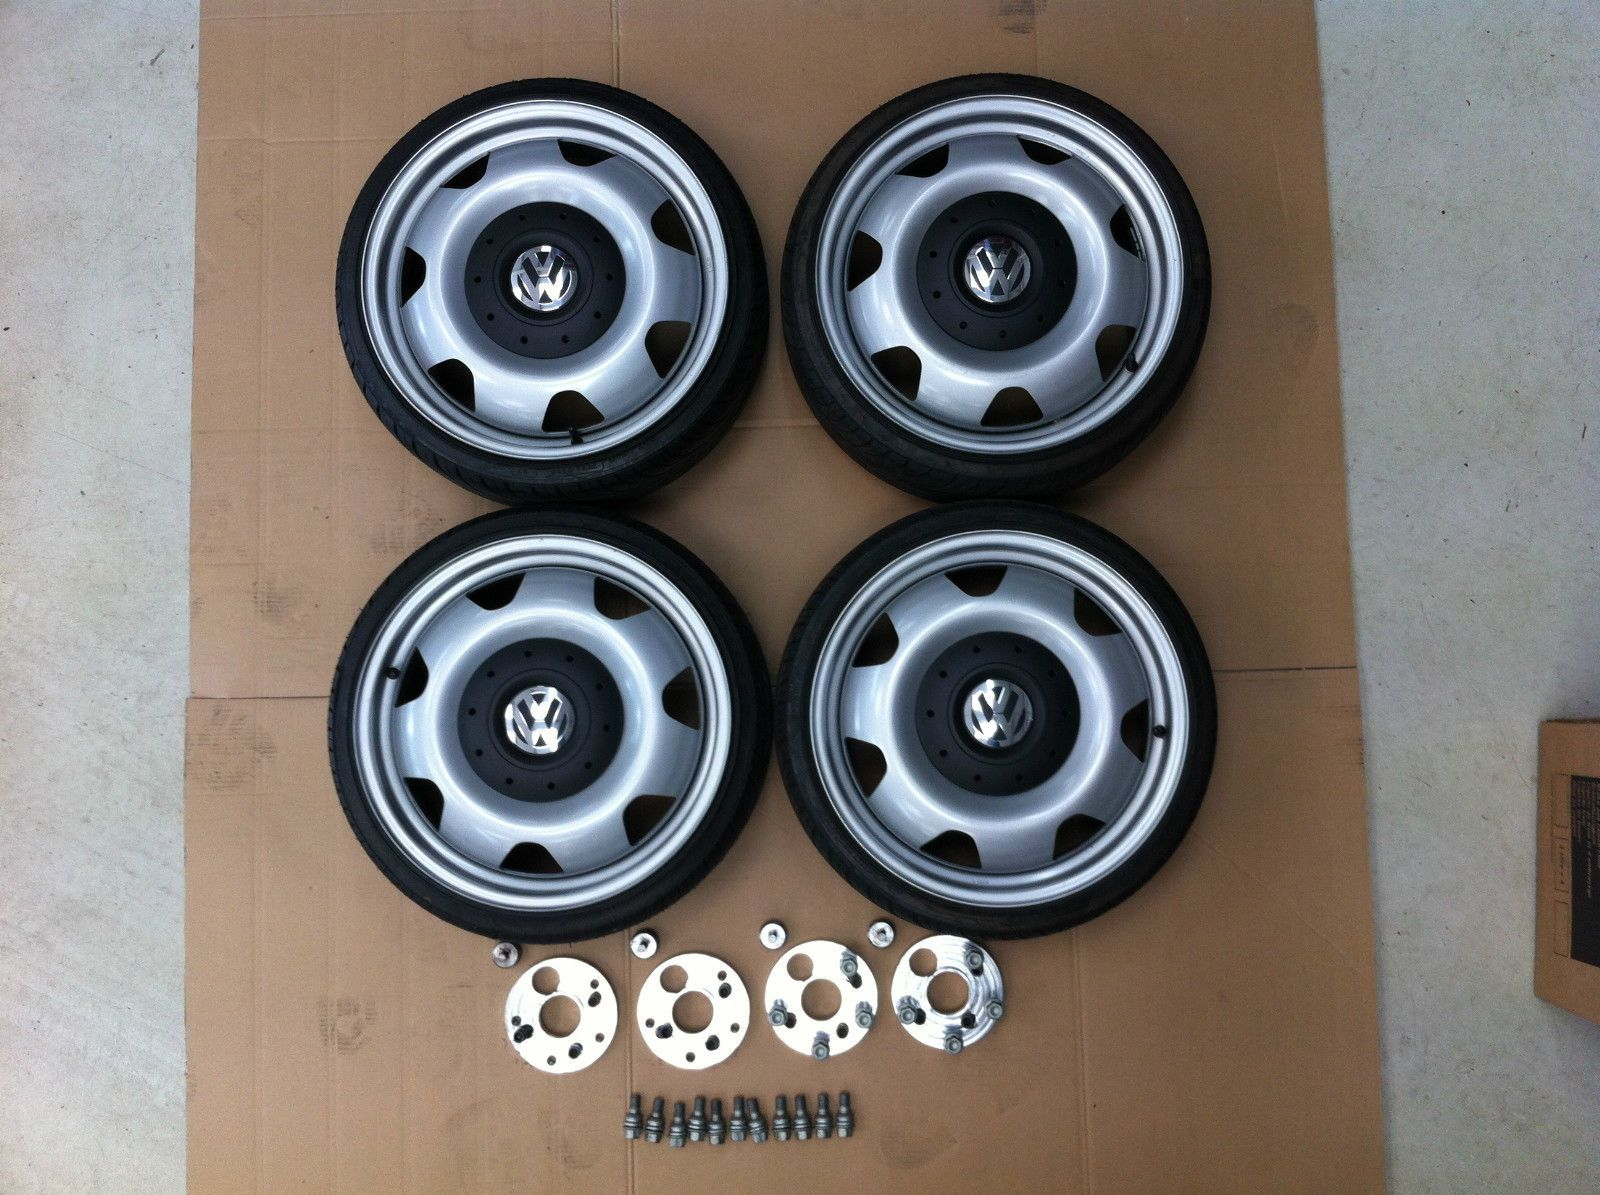 Vw T5 Transporter Steel Wheels 17 Inch 5 X 120 4 X 100 Golf Polo Etc In Vehicle Parts Amp Accessories Car Wheels Tyres Am Velg Auto S En Motoren Wielen